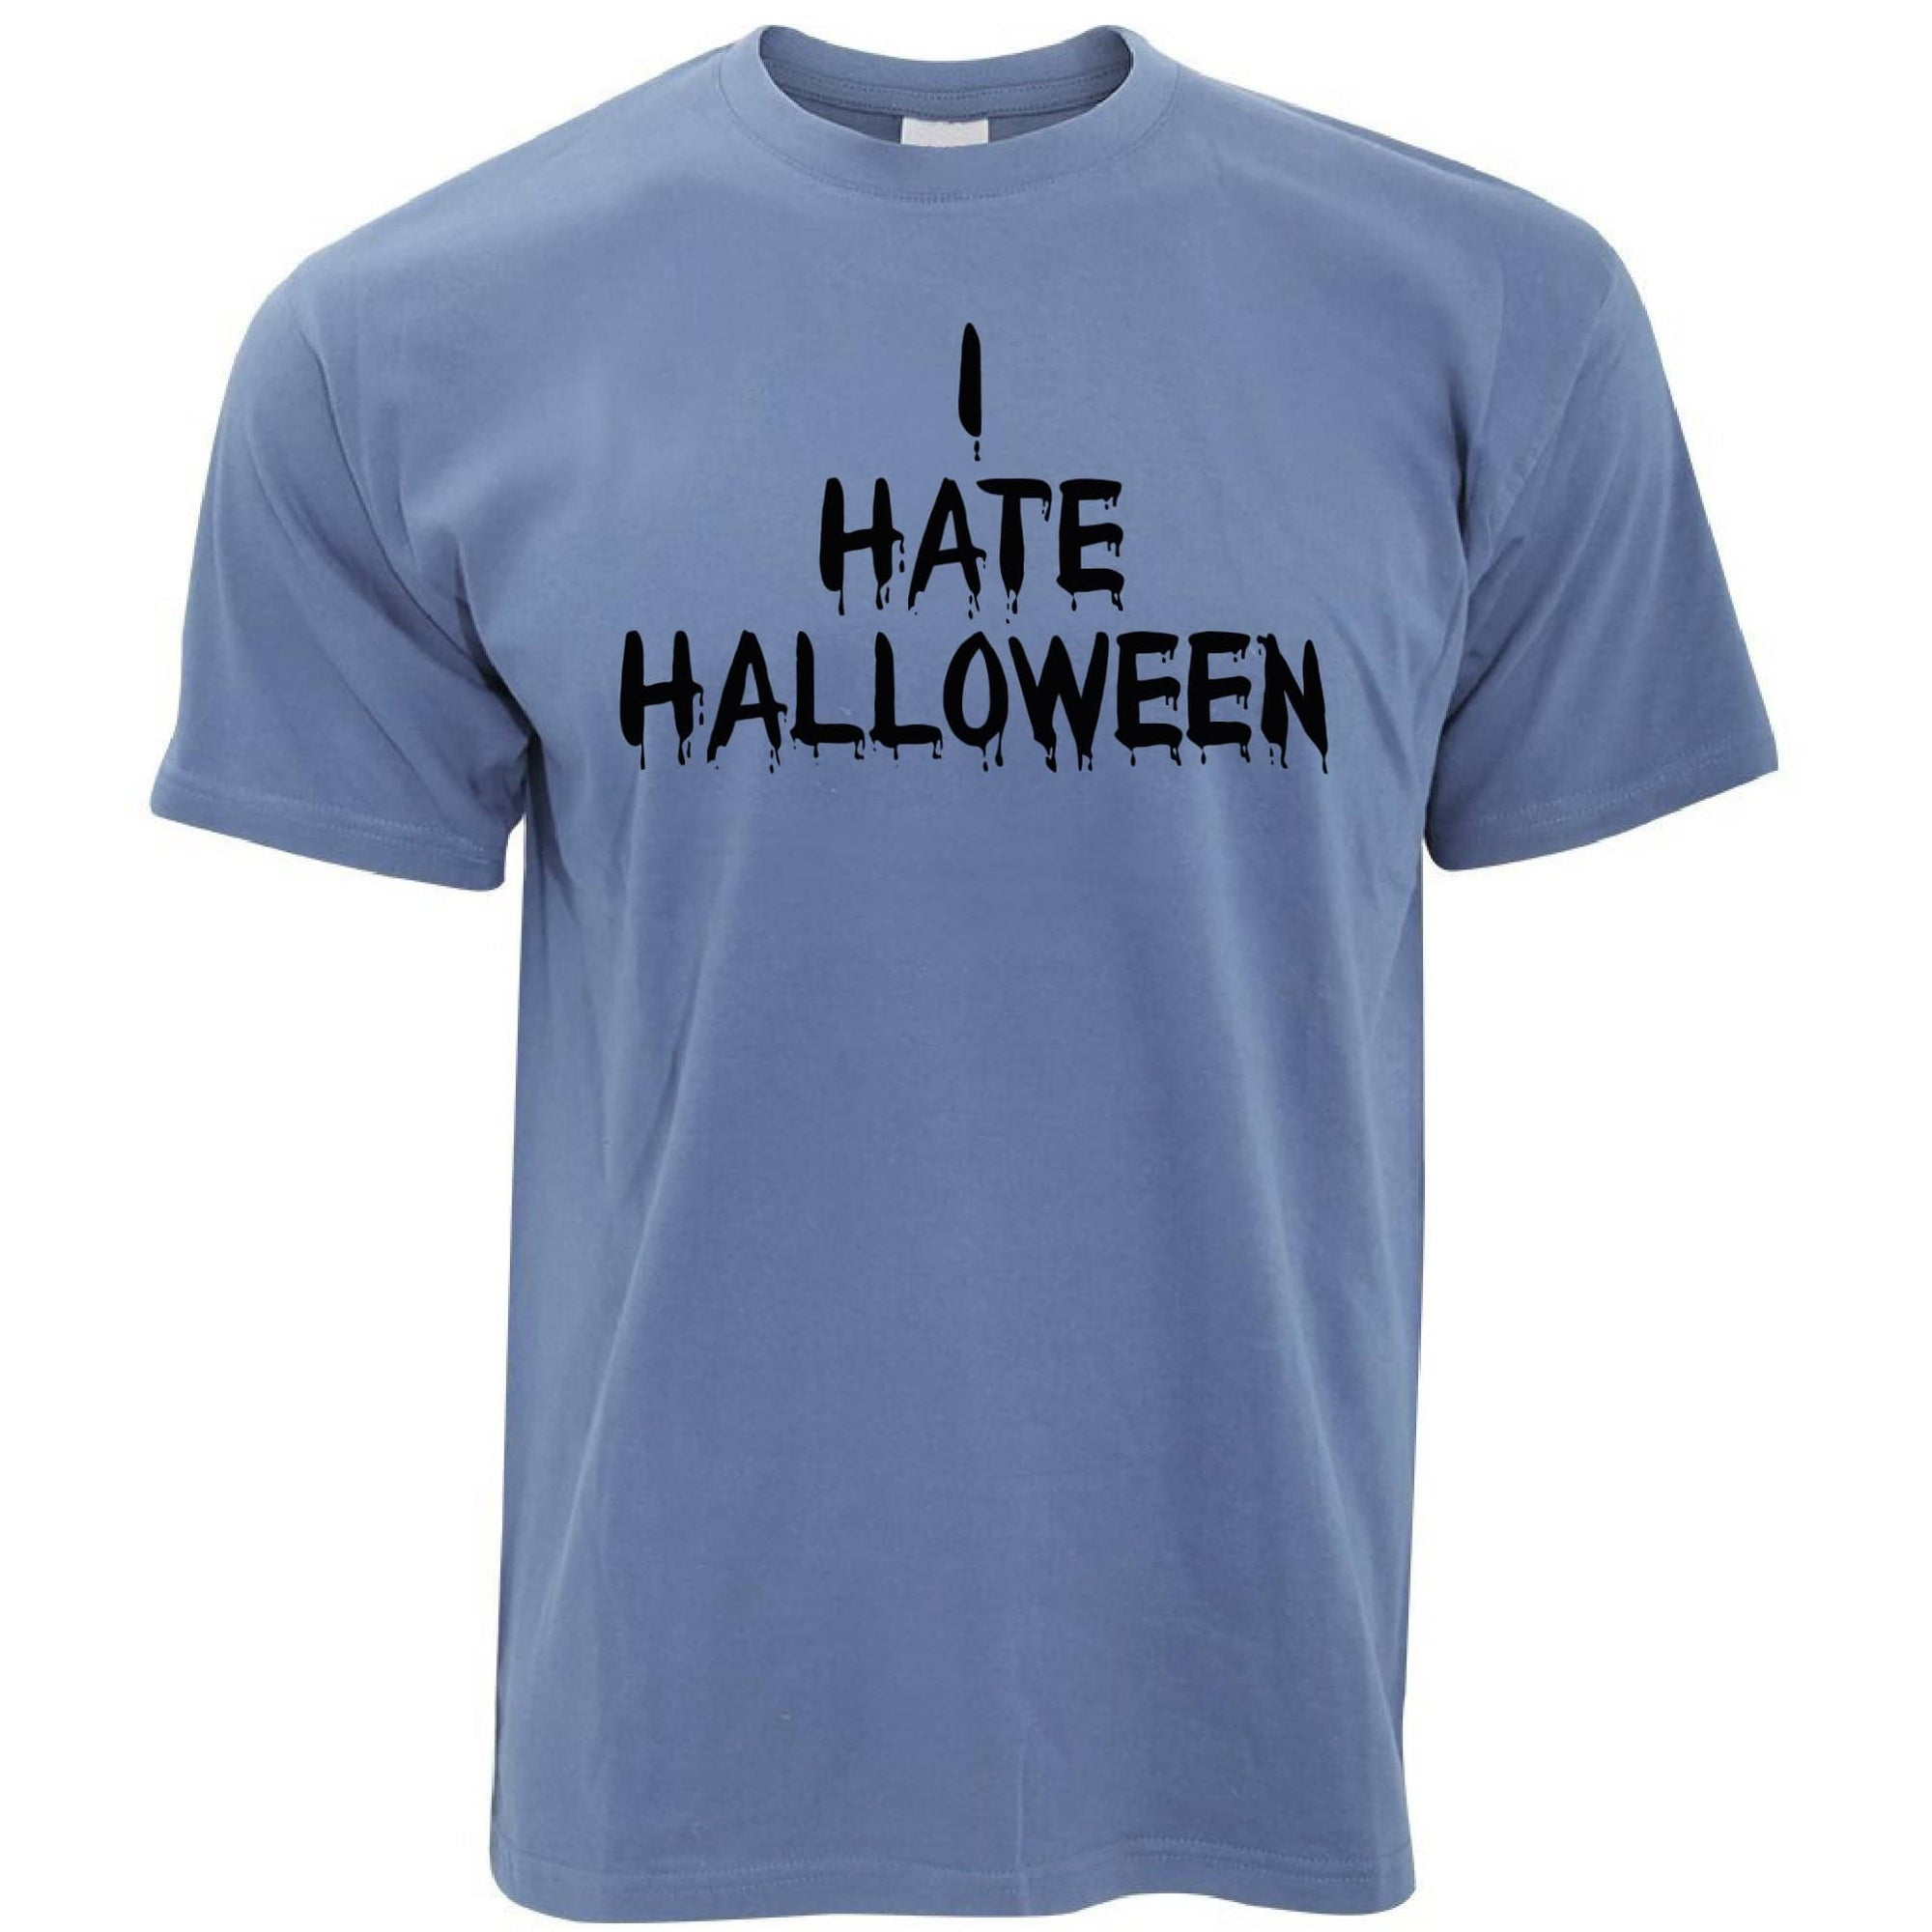 Anti-Holiday T Shirt I Hate Halloween Slogan